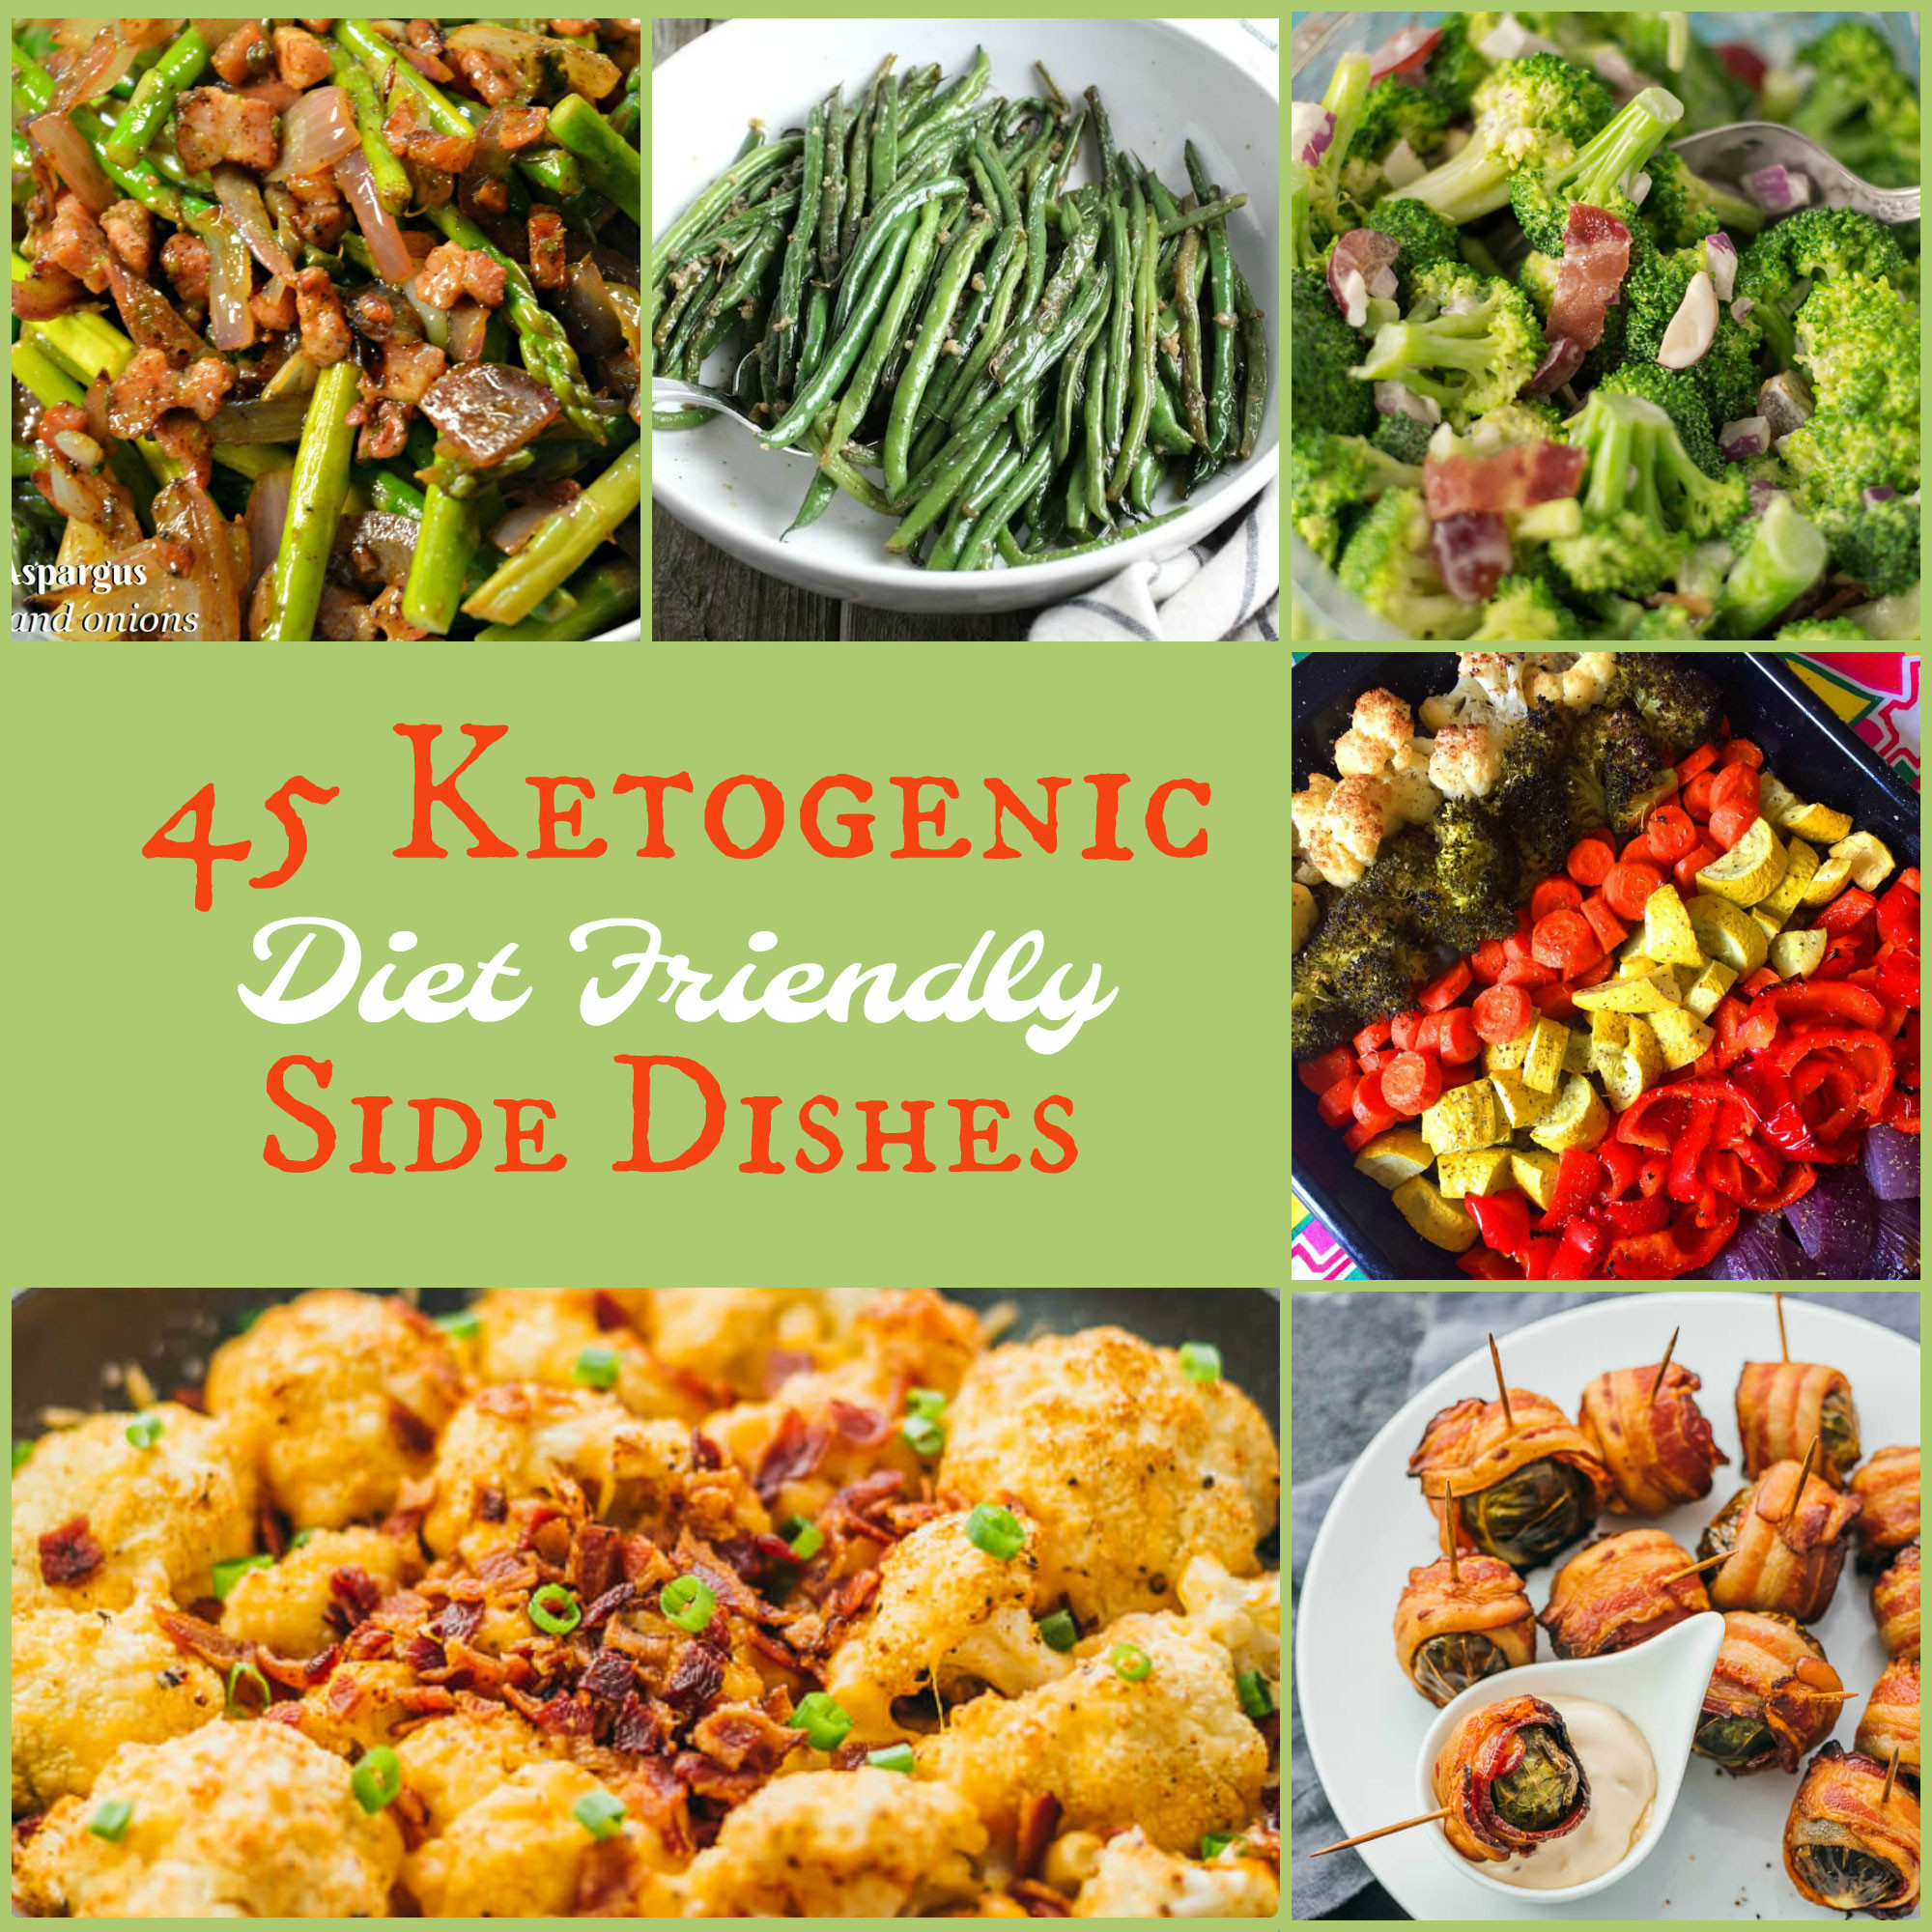 Keto Dinner Side Dishes  Keto Diet Side Dishes for the Holidays Ketogenic recipe